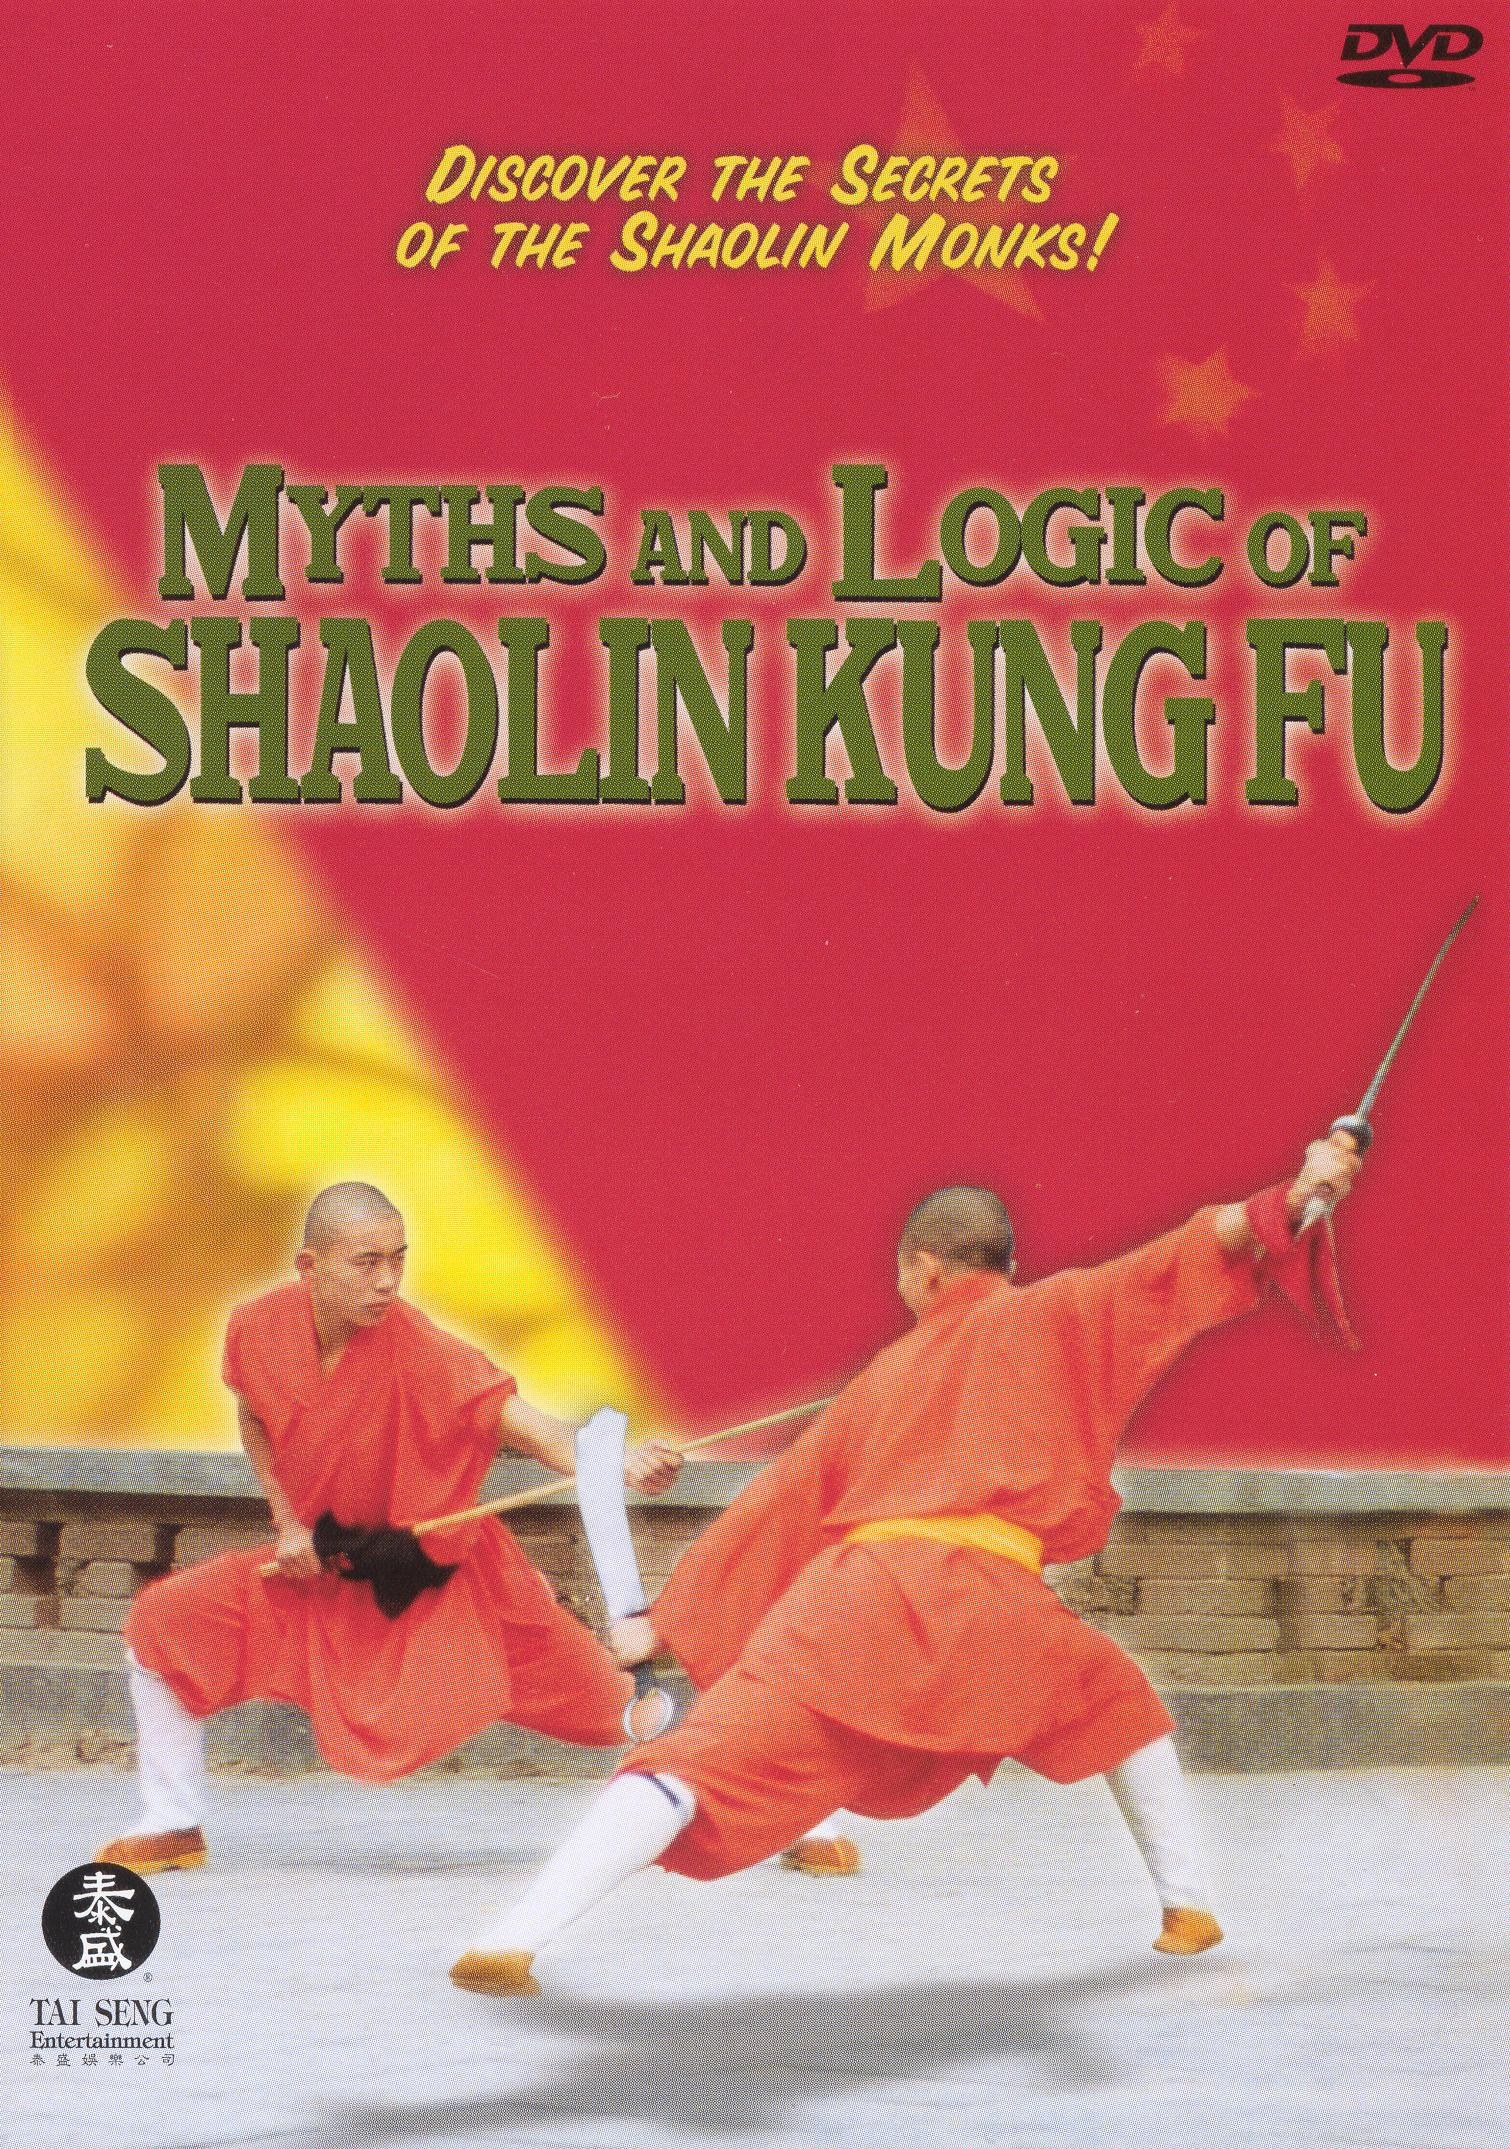 Myths and Logic of Shaolin Kung Fu